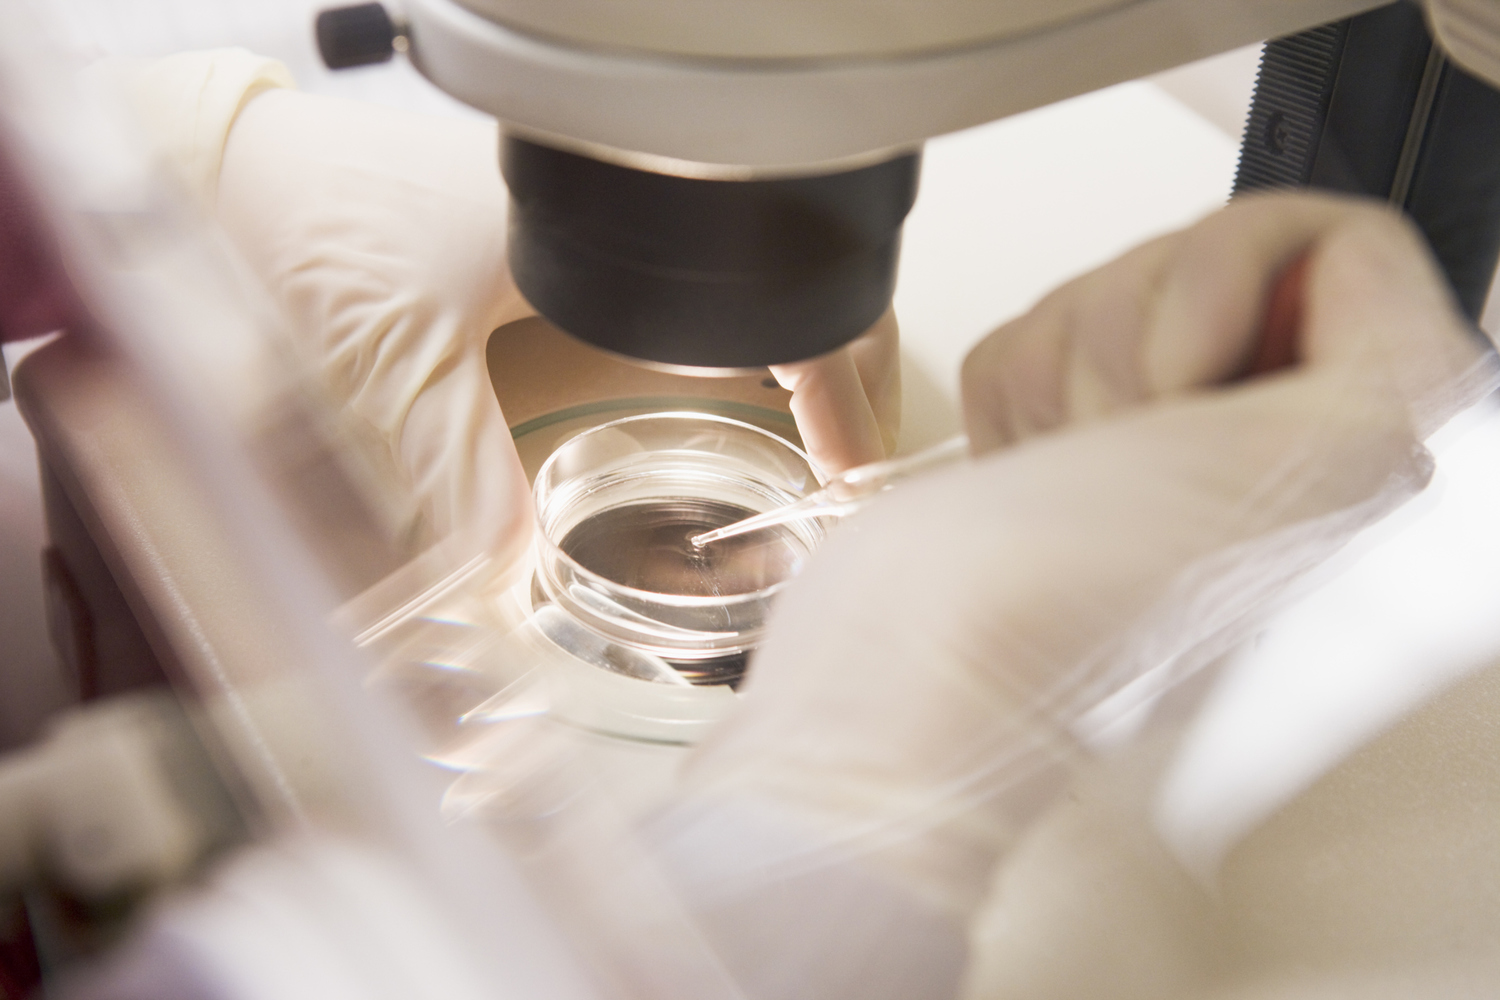 Embryologist transferring egg to a special culture media (selective focus)